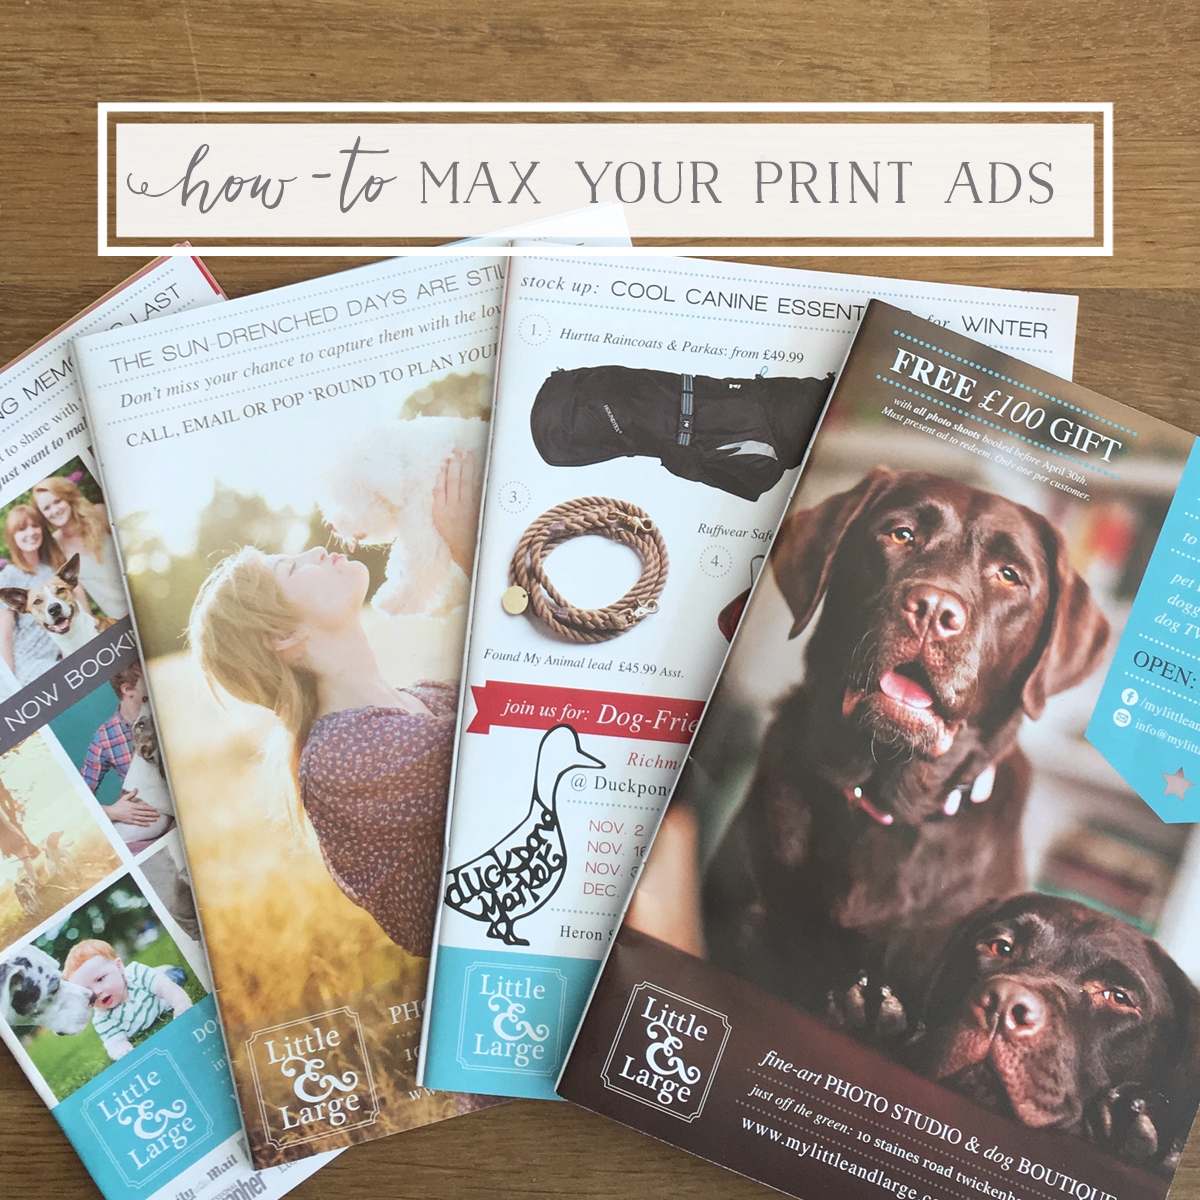 Get the Most out of Print Ads